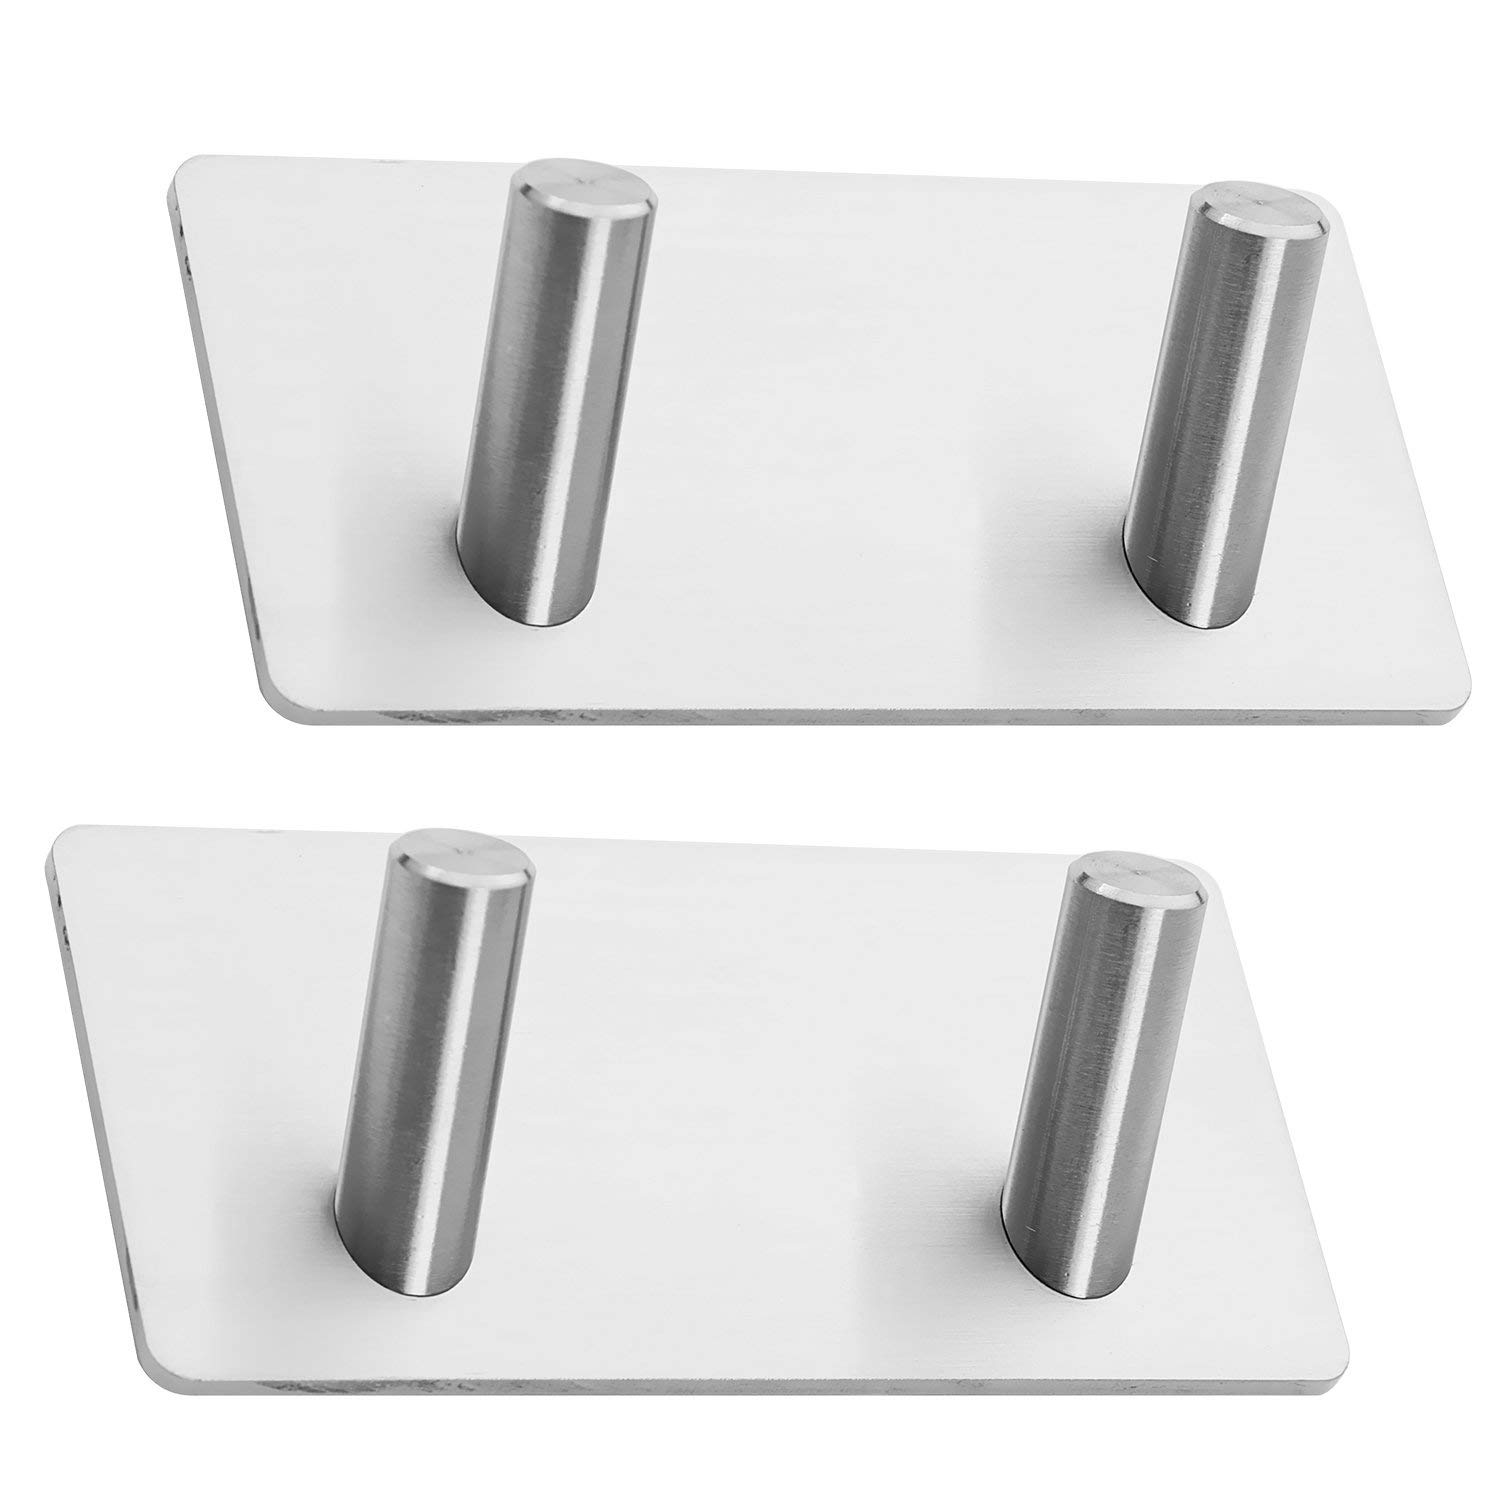 2 Pack of Self Adhesive Hooks, Towel Rail, Hat Towel Robe Coat Stick-up Stainless Steel Hanger for Kitchen Bathrooms Lavatory